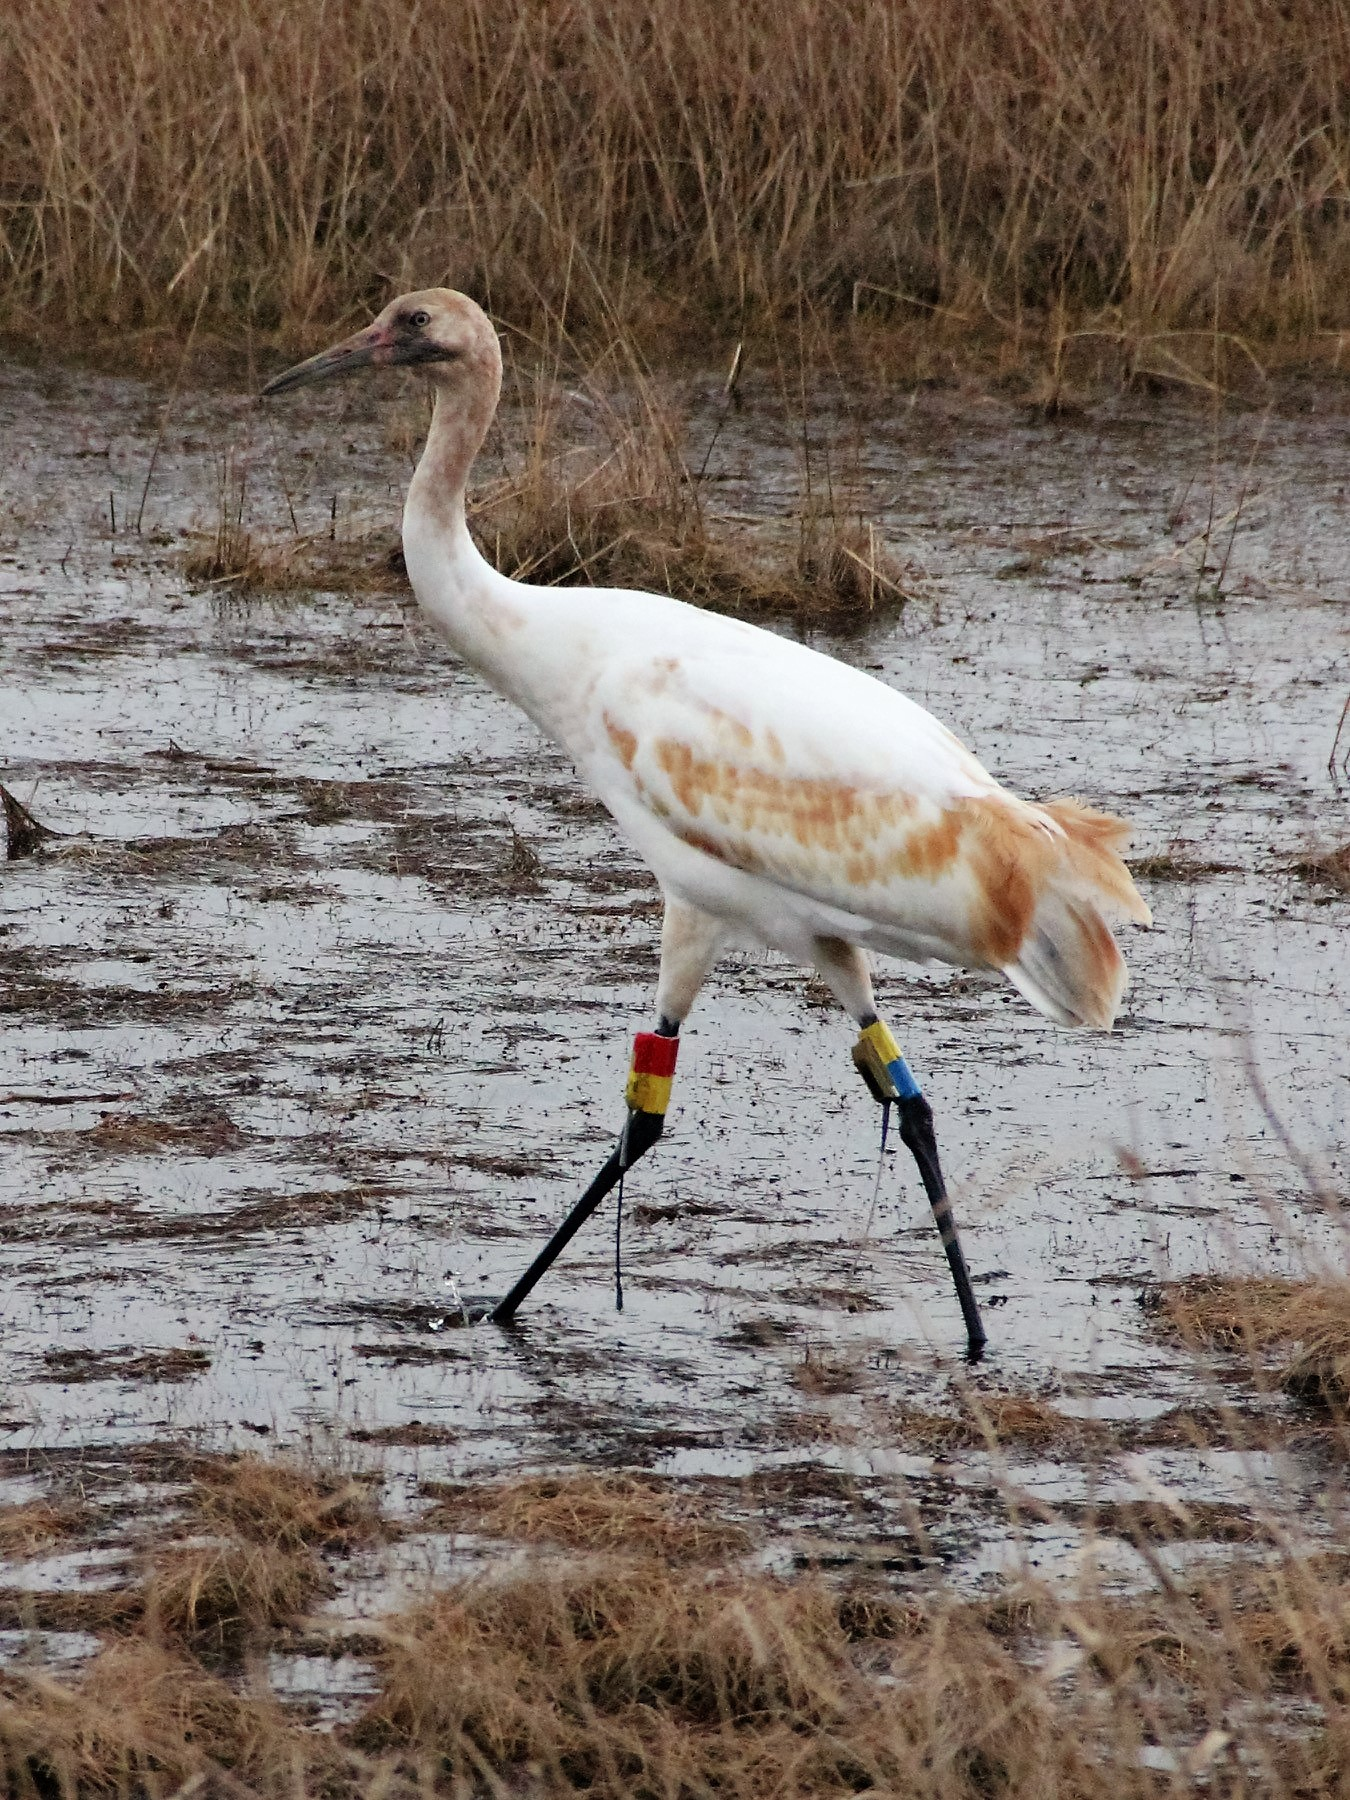 Juvenile crane at White Lake Conservation Area. Photo: Karen Westphal, Audubon Louisiana.